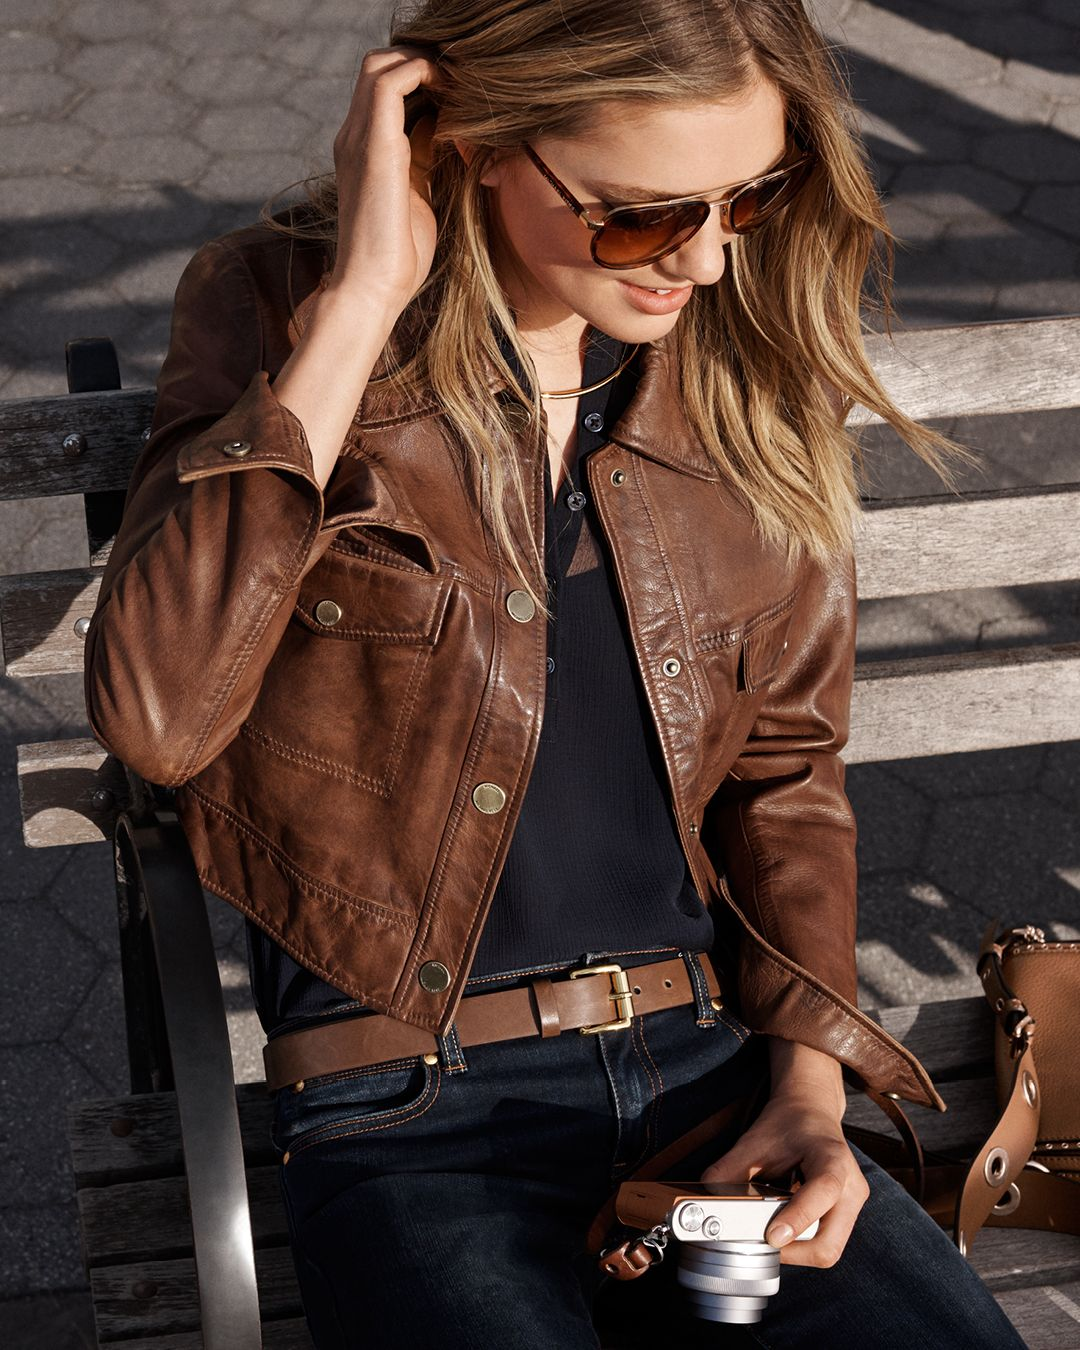 A cropped cut and cognac color makes this leather jacket